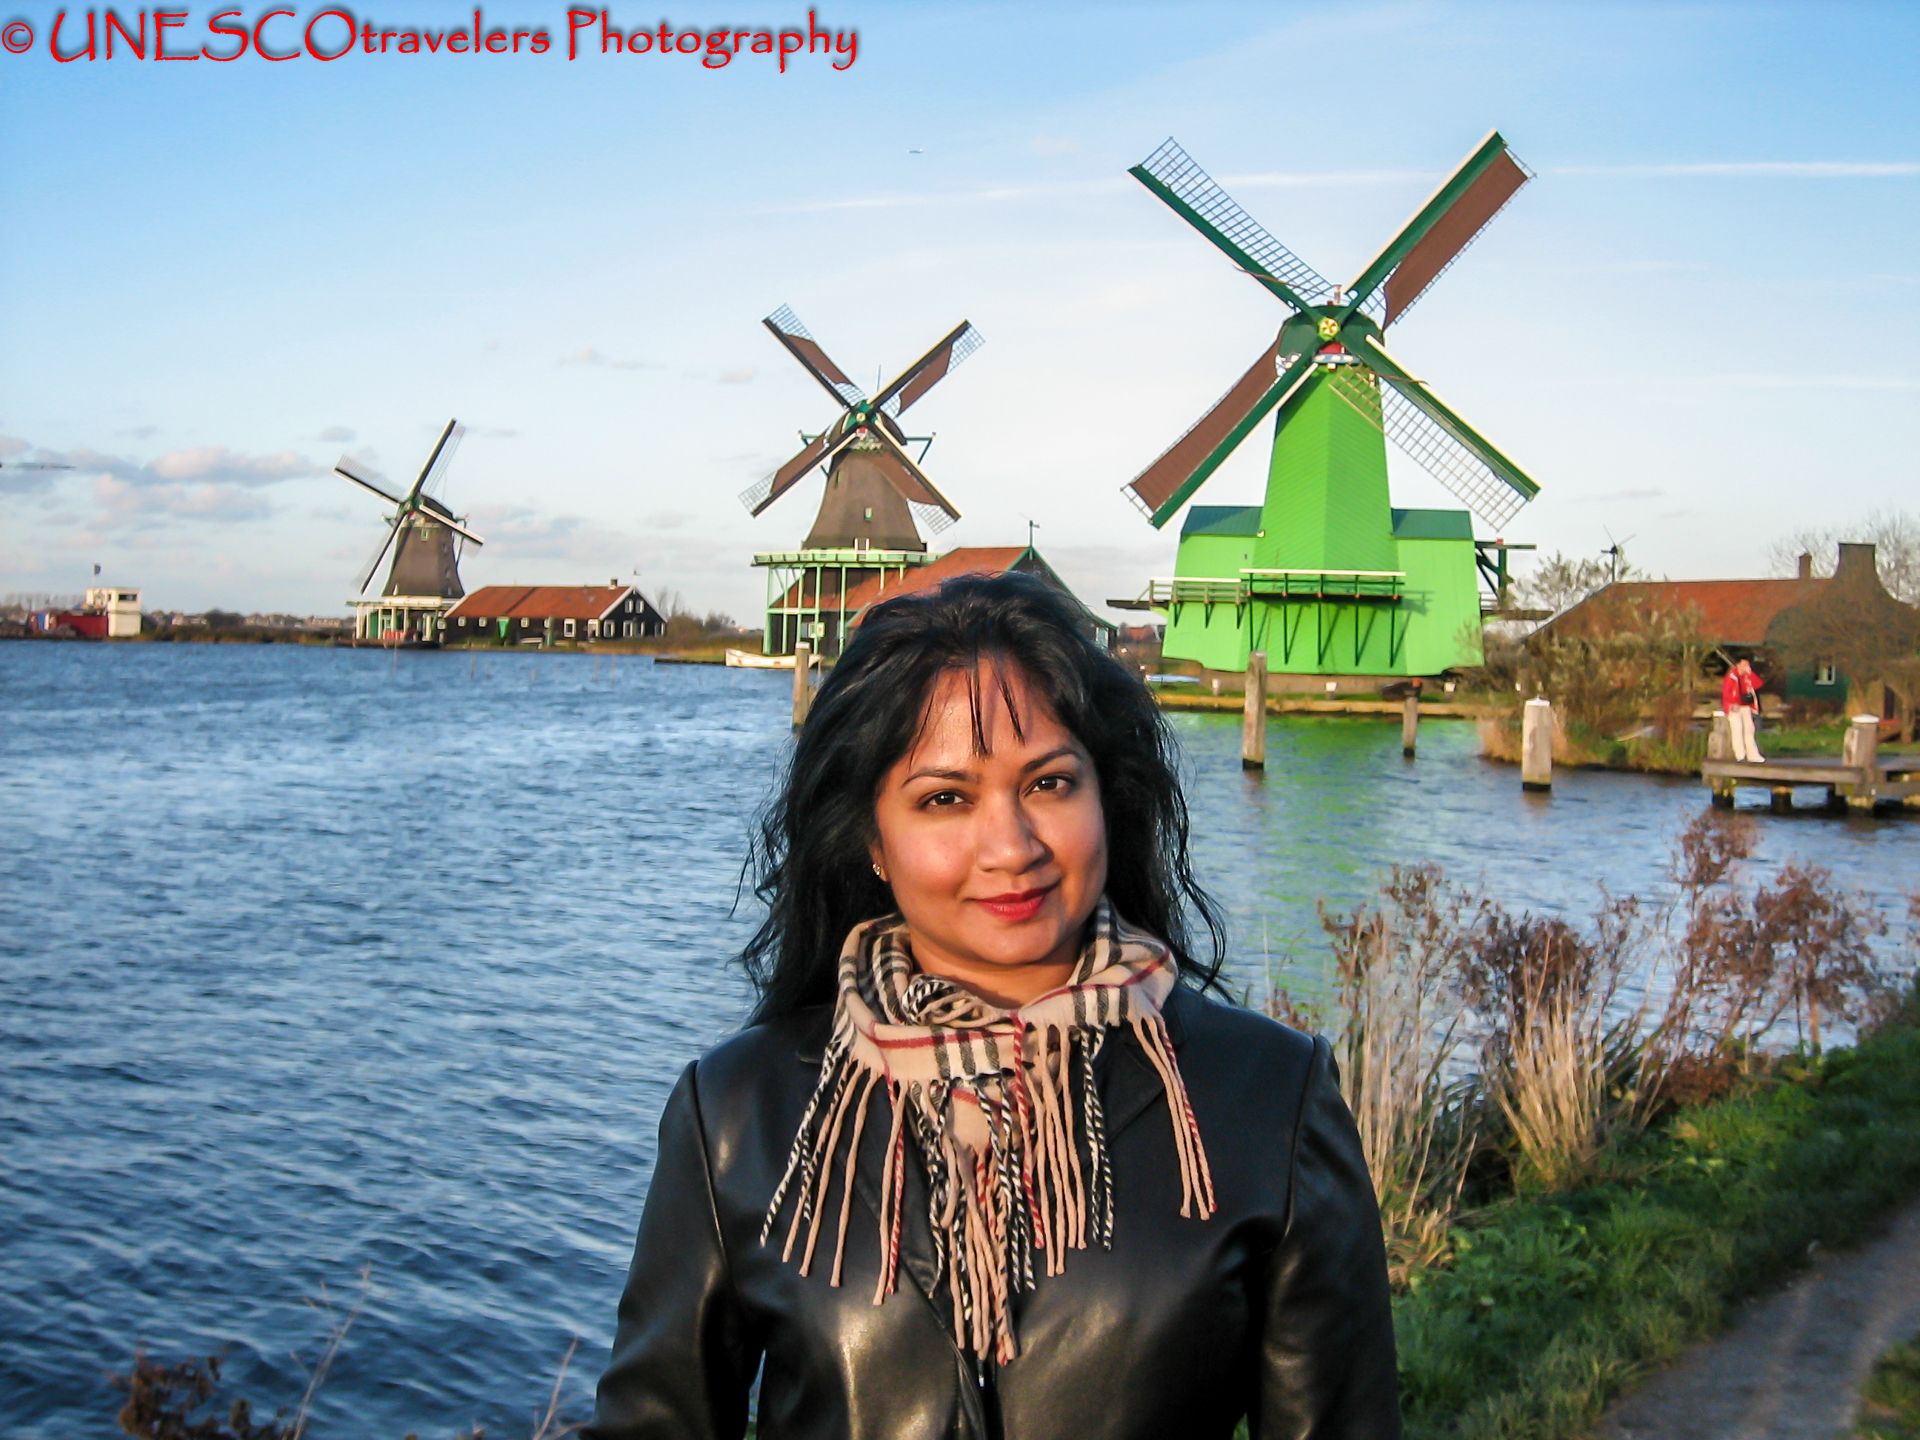 The Canals and Windmills of Holland Seventeenth-century canal ring area of Amsterdam inside the Singelgracht - Netherlands By UNESCOtravelers